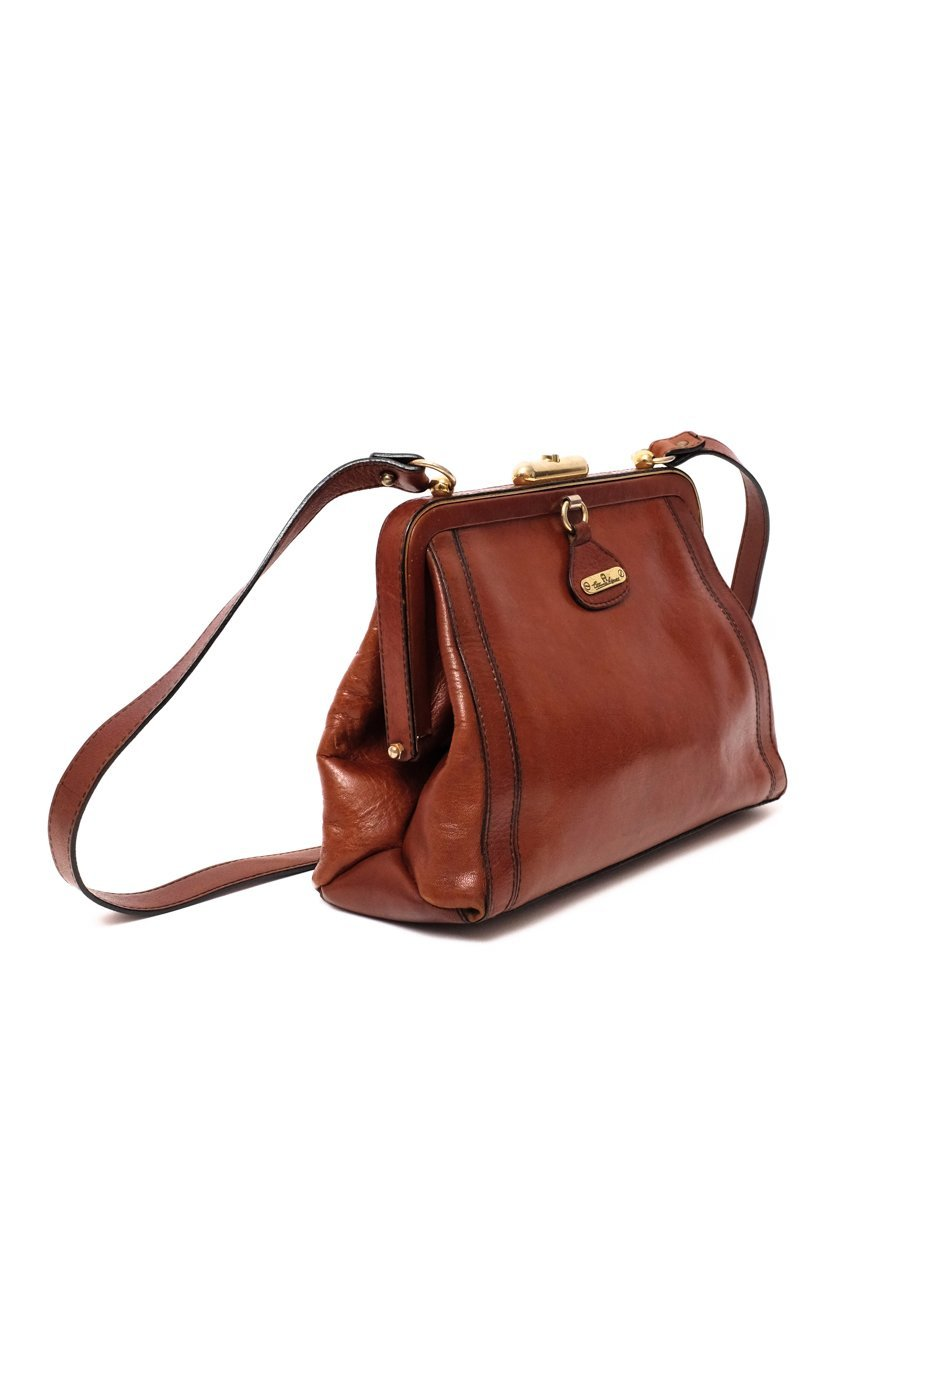 0284_AIGNER VINTAGE COGNAC LEATHER BAG